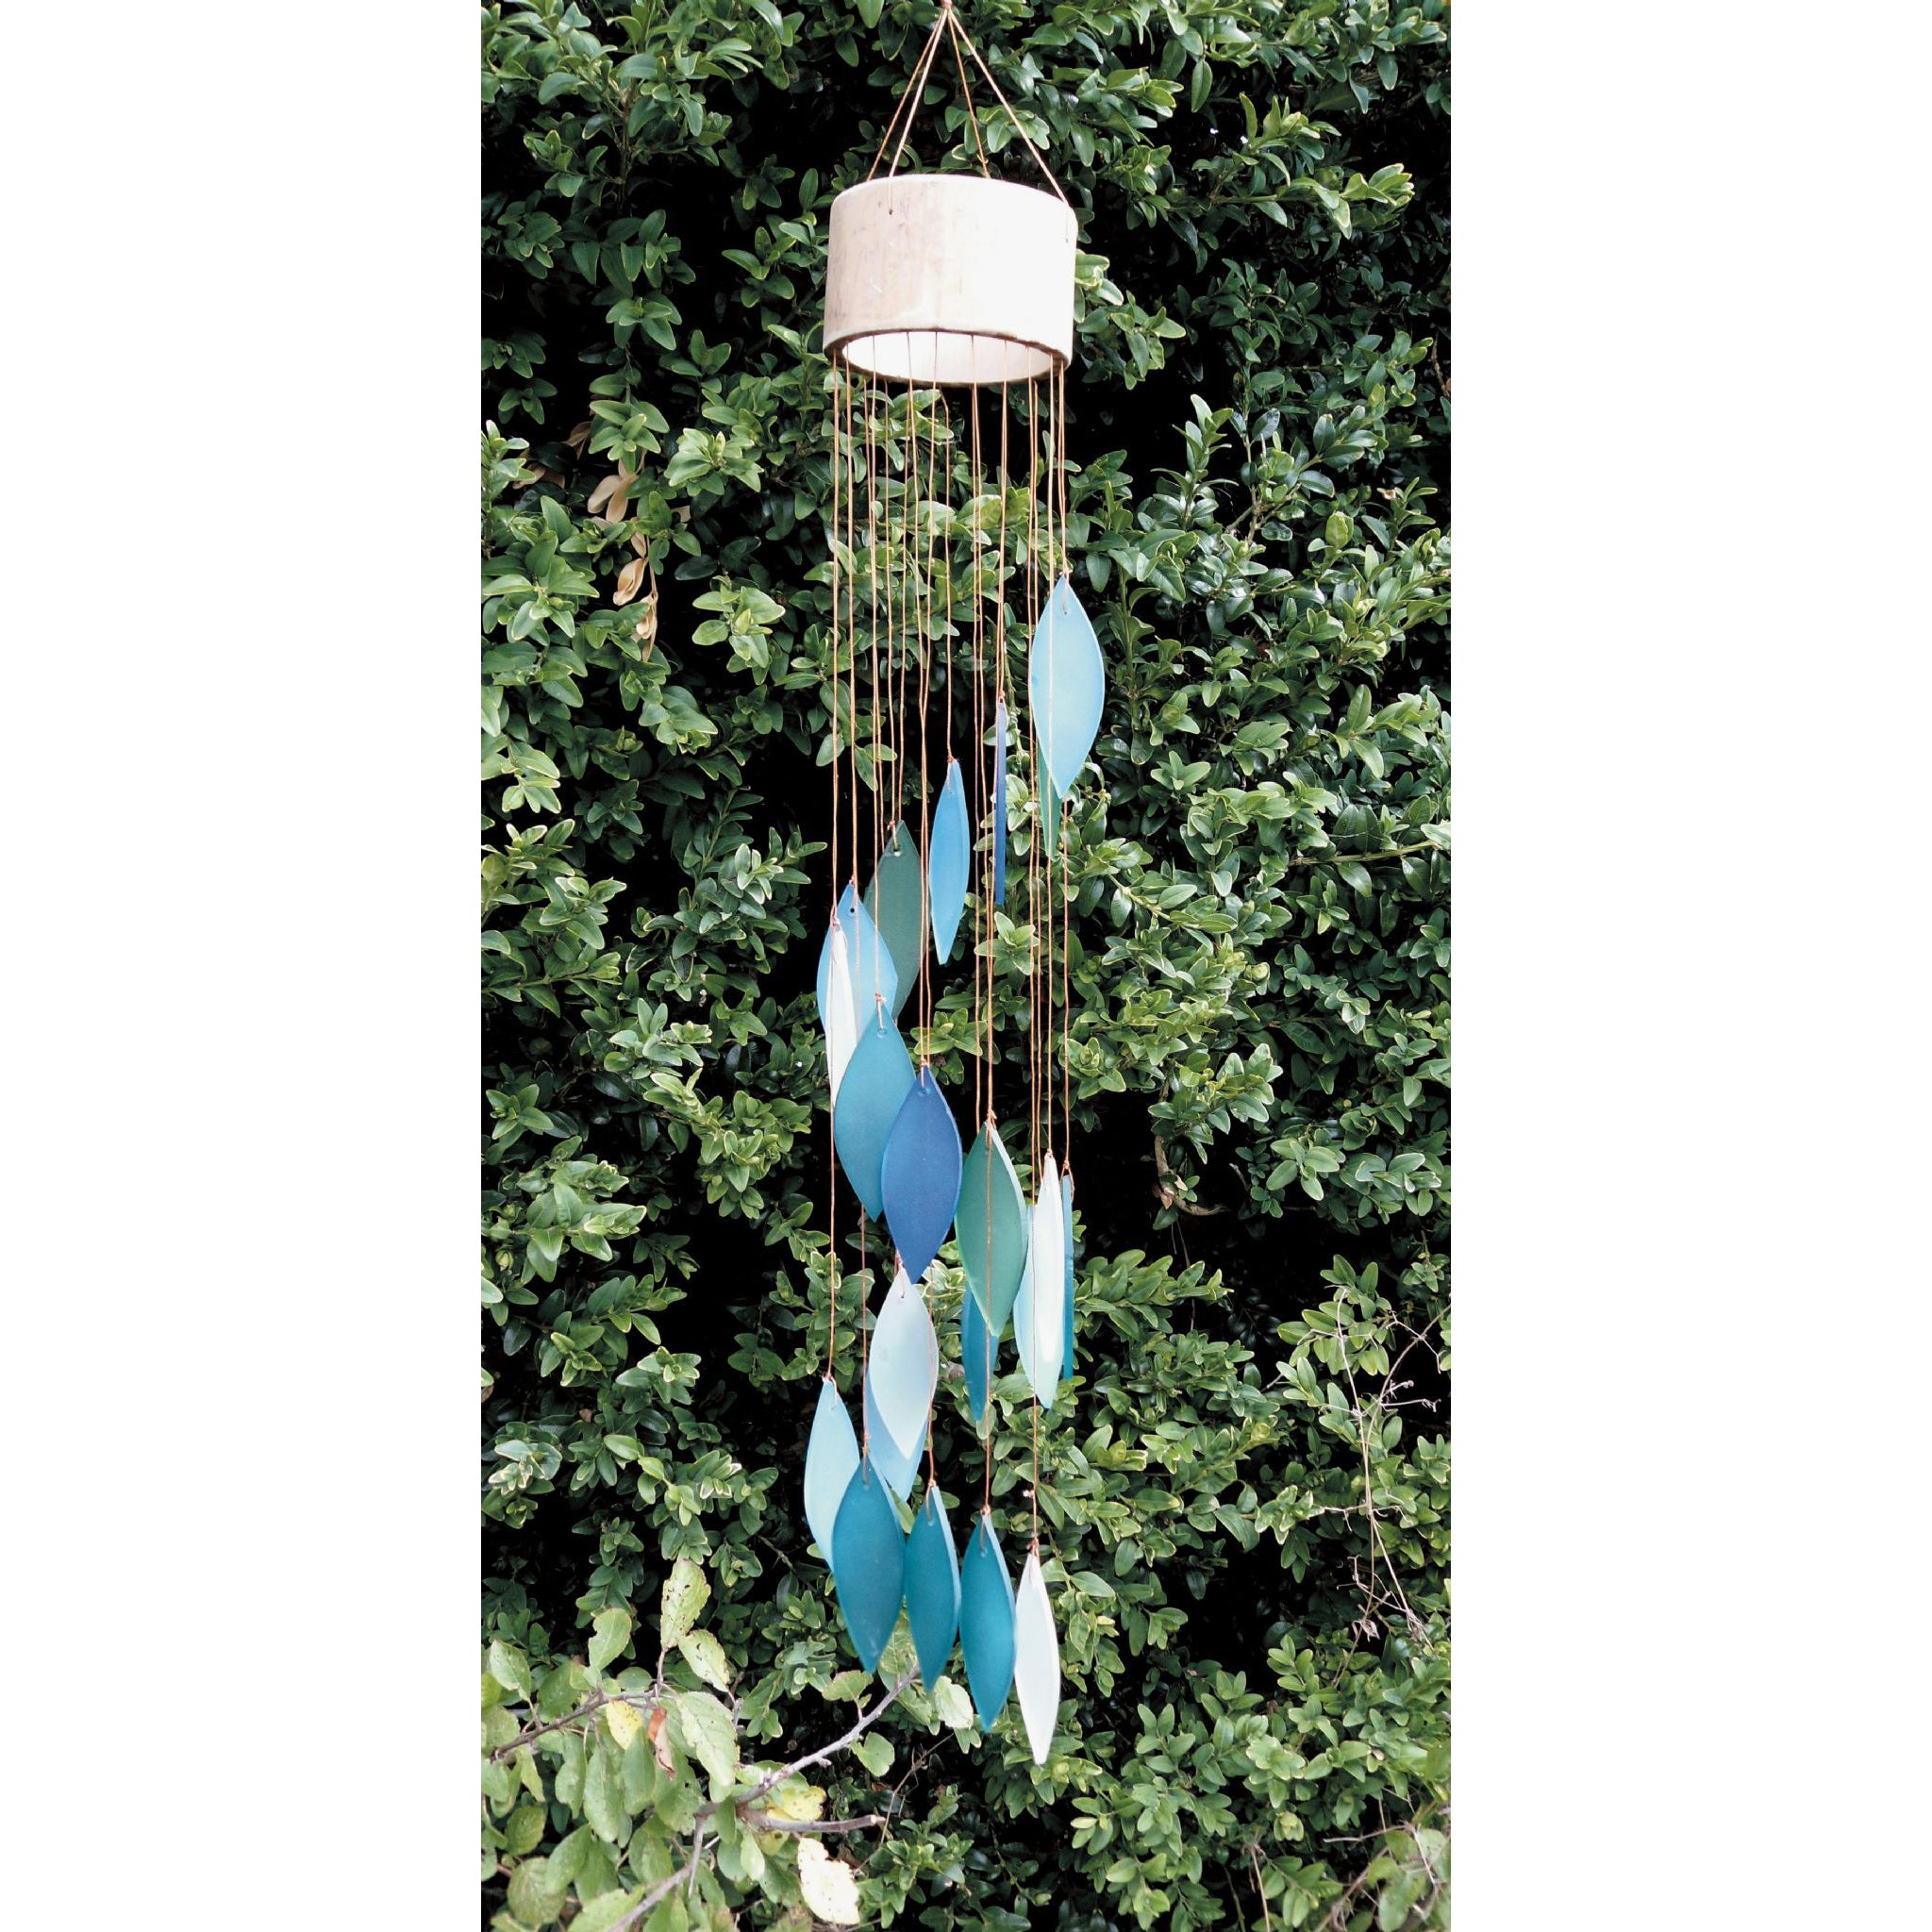 Glass Windchime Spiral - Turquoise